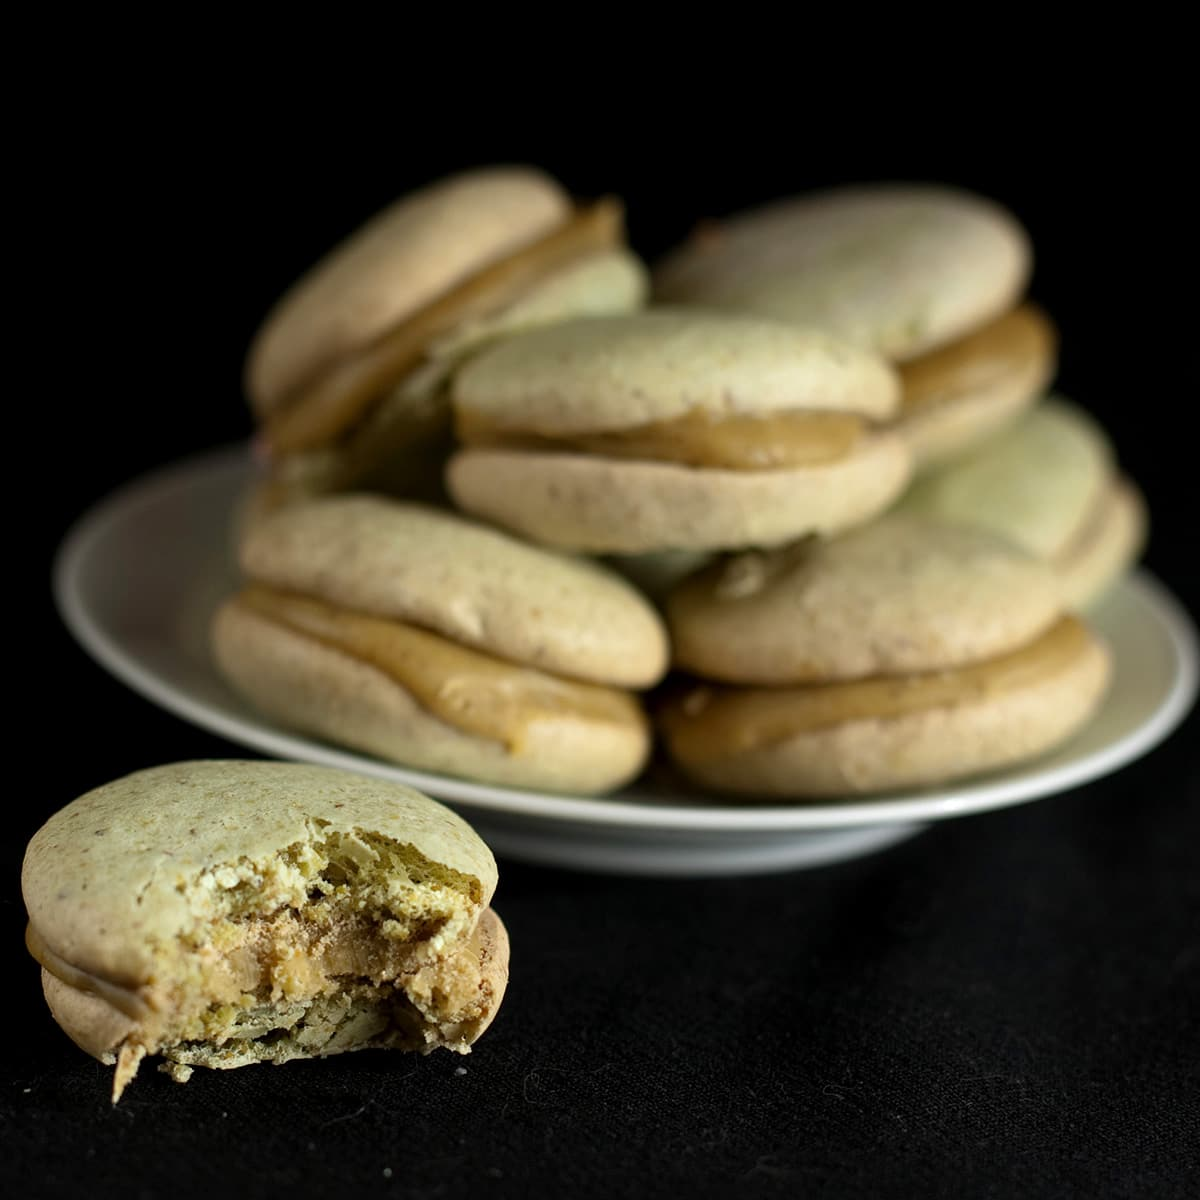 A small white plate with a pile of pistachio macarons on it.